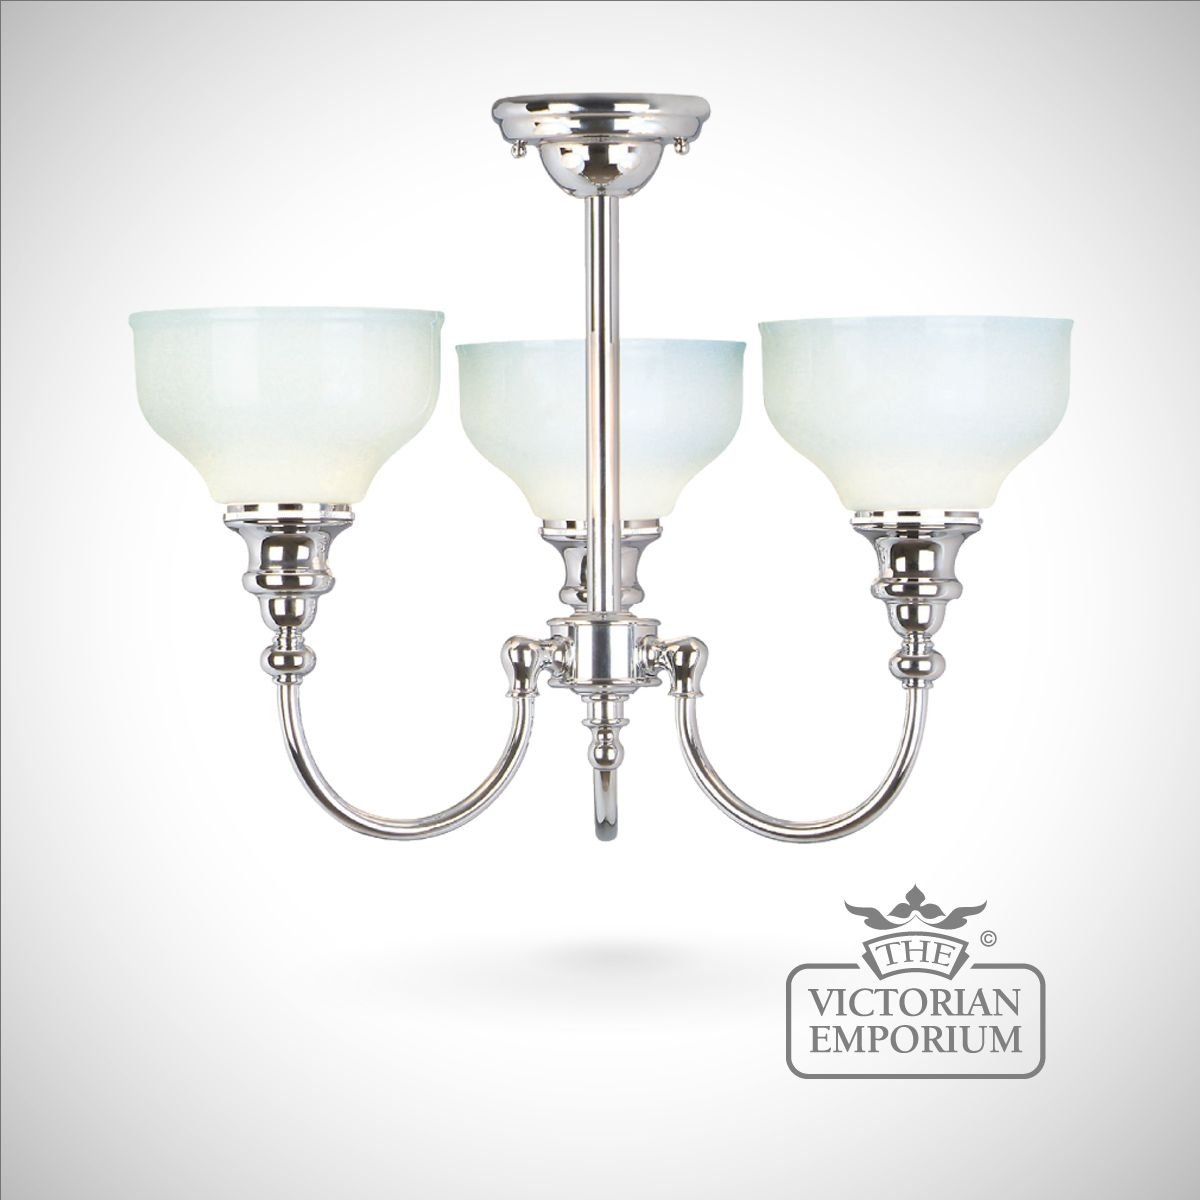 Perfect Bathroom Wall Light  Carol 1 In Polished Chrome  Lights